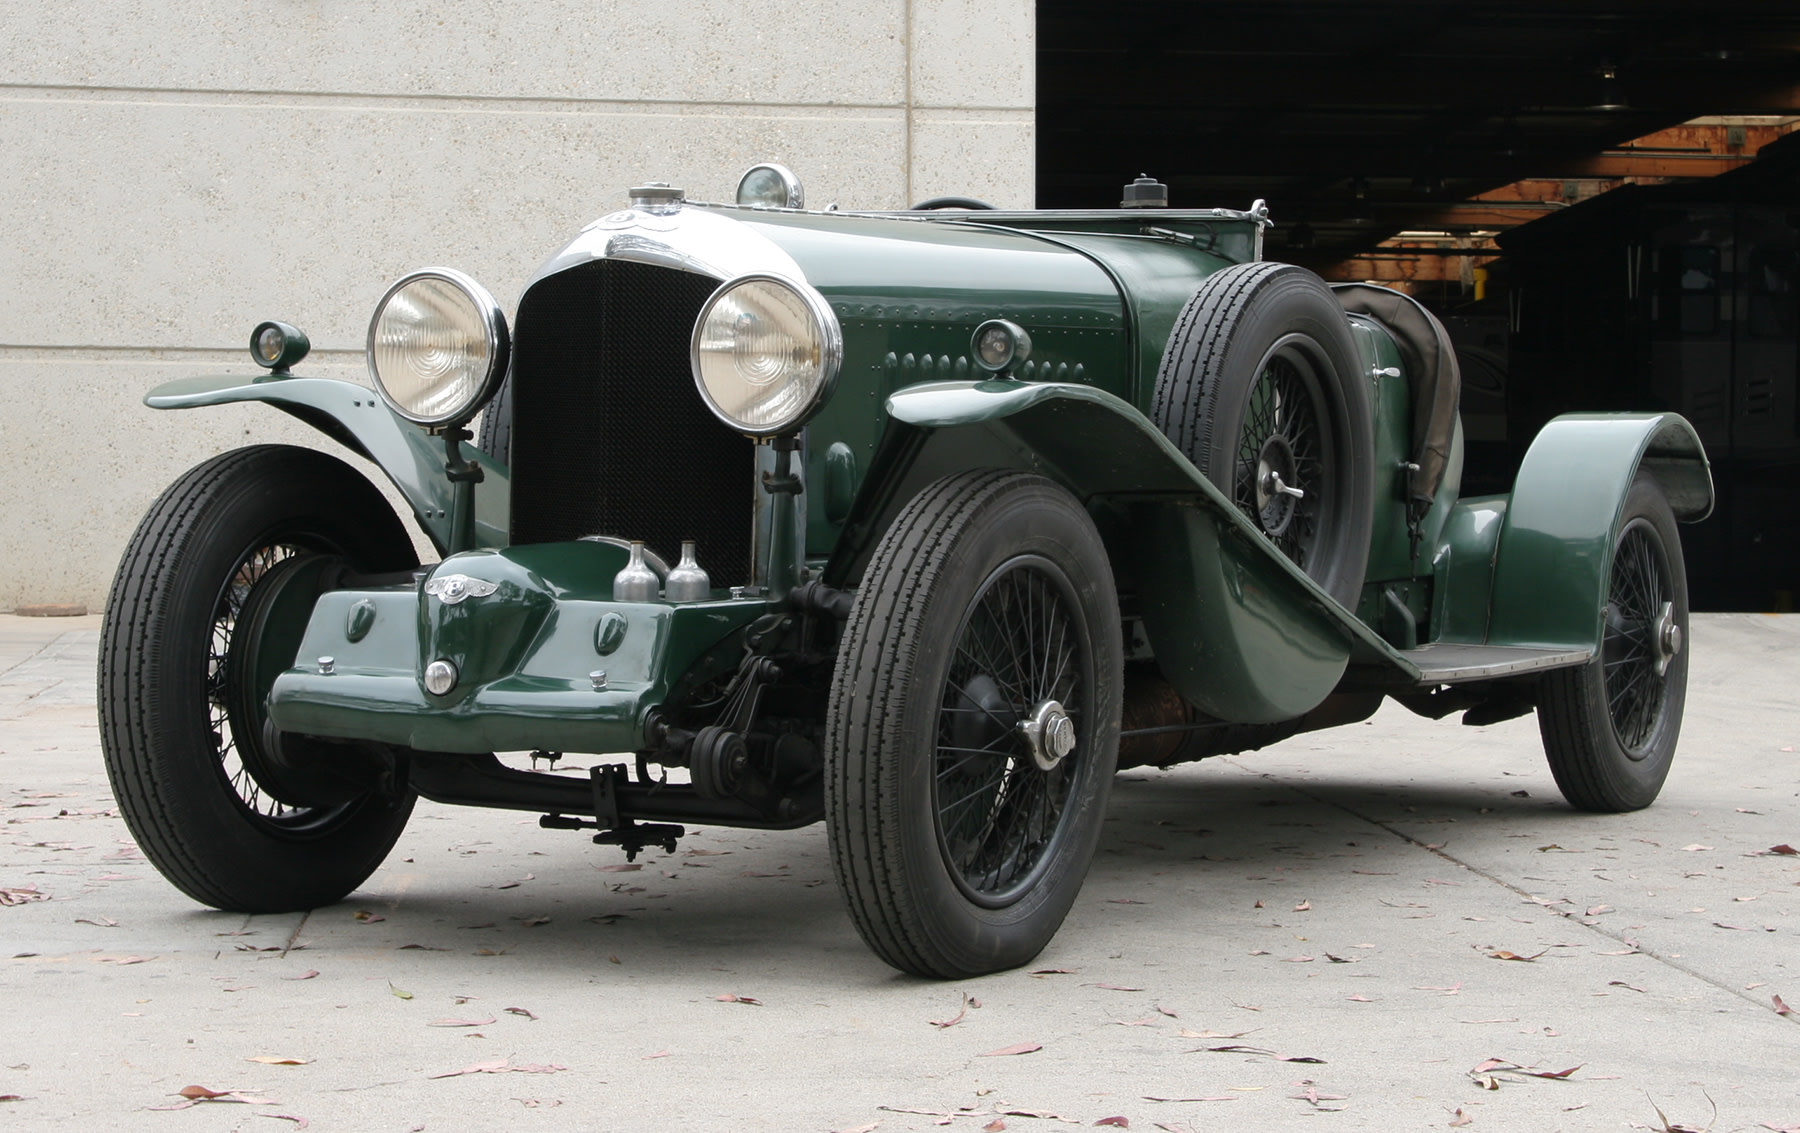 1931 Bentley 4 1/2-Litre Supercharged 2/3-Seater Boat Tail Roadster